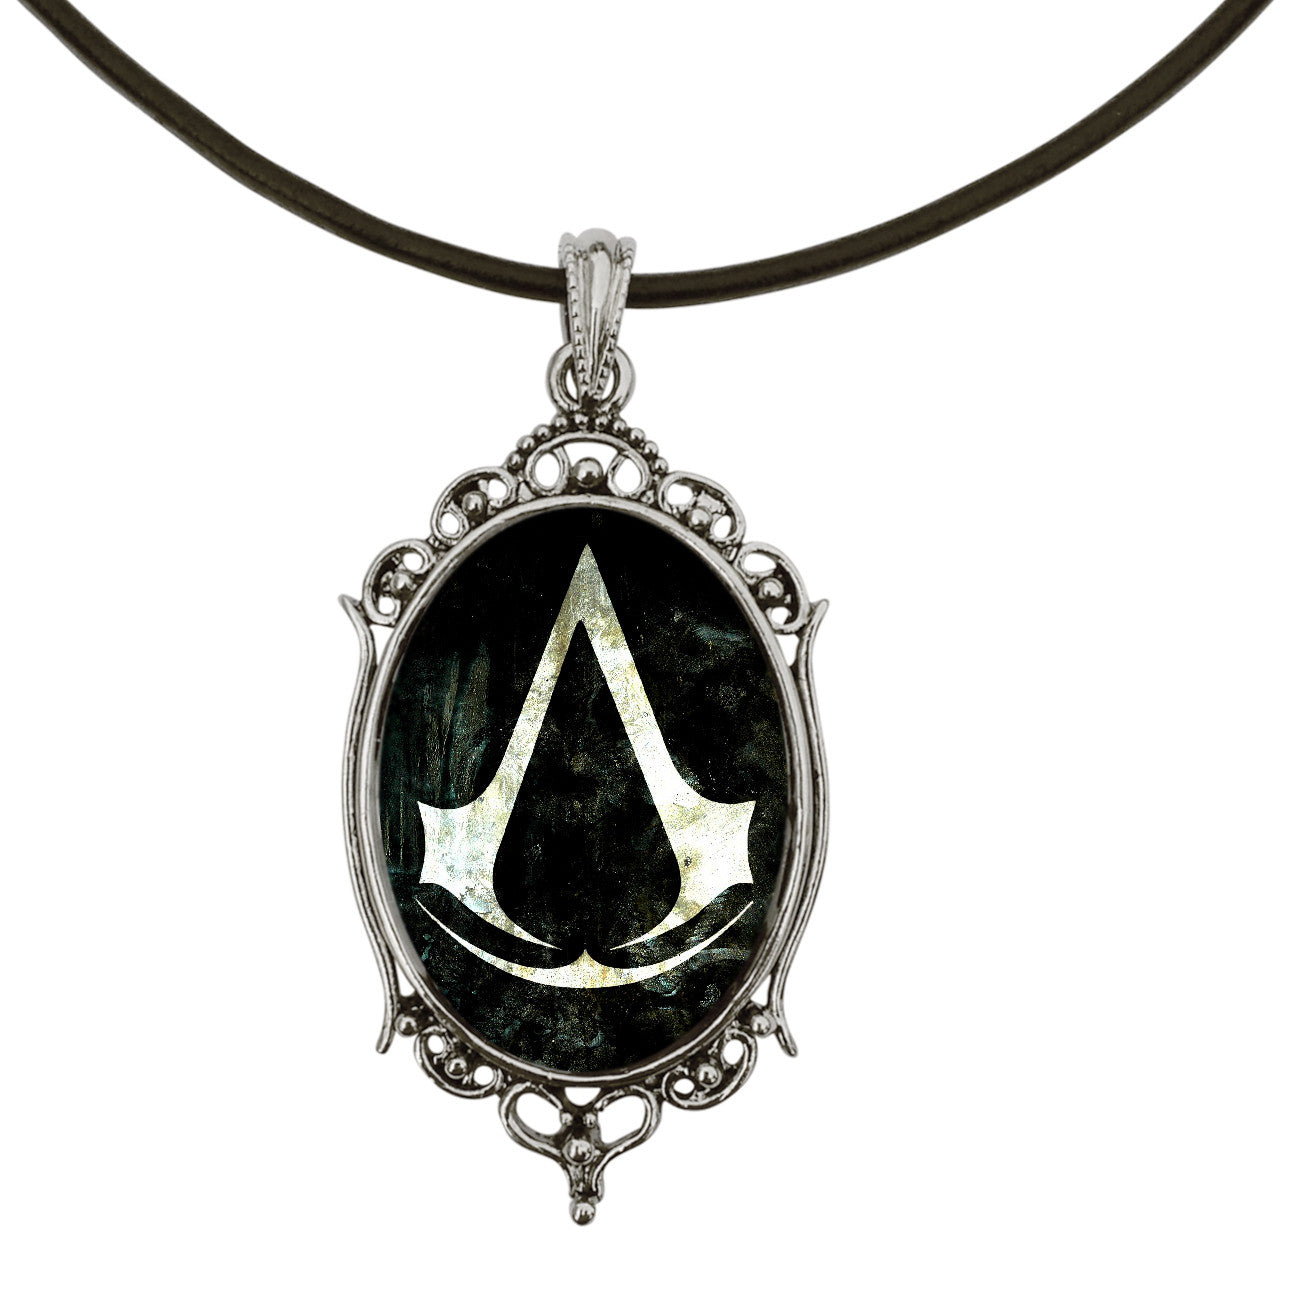 Assassins creed video game symbol antique silver cameo pendant assassins creed video game symbol antique silver cameo pendant necklace biocorpaavc Images